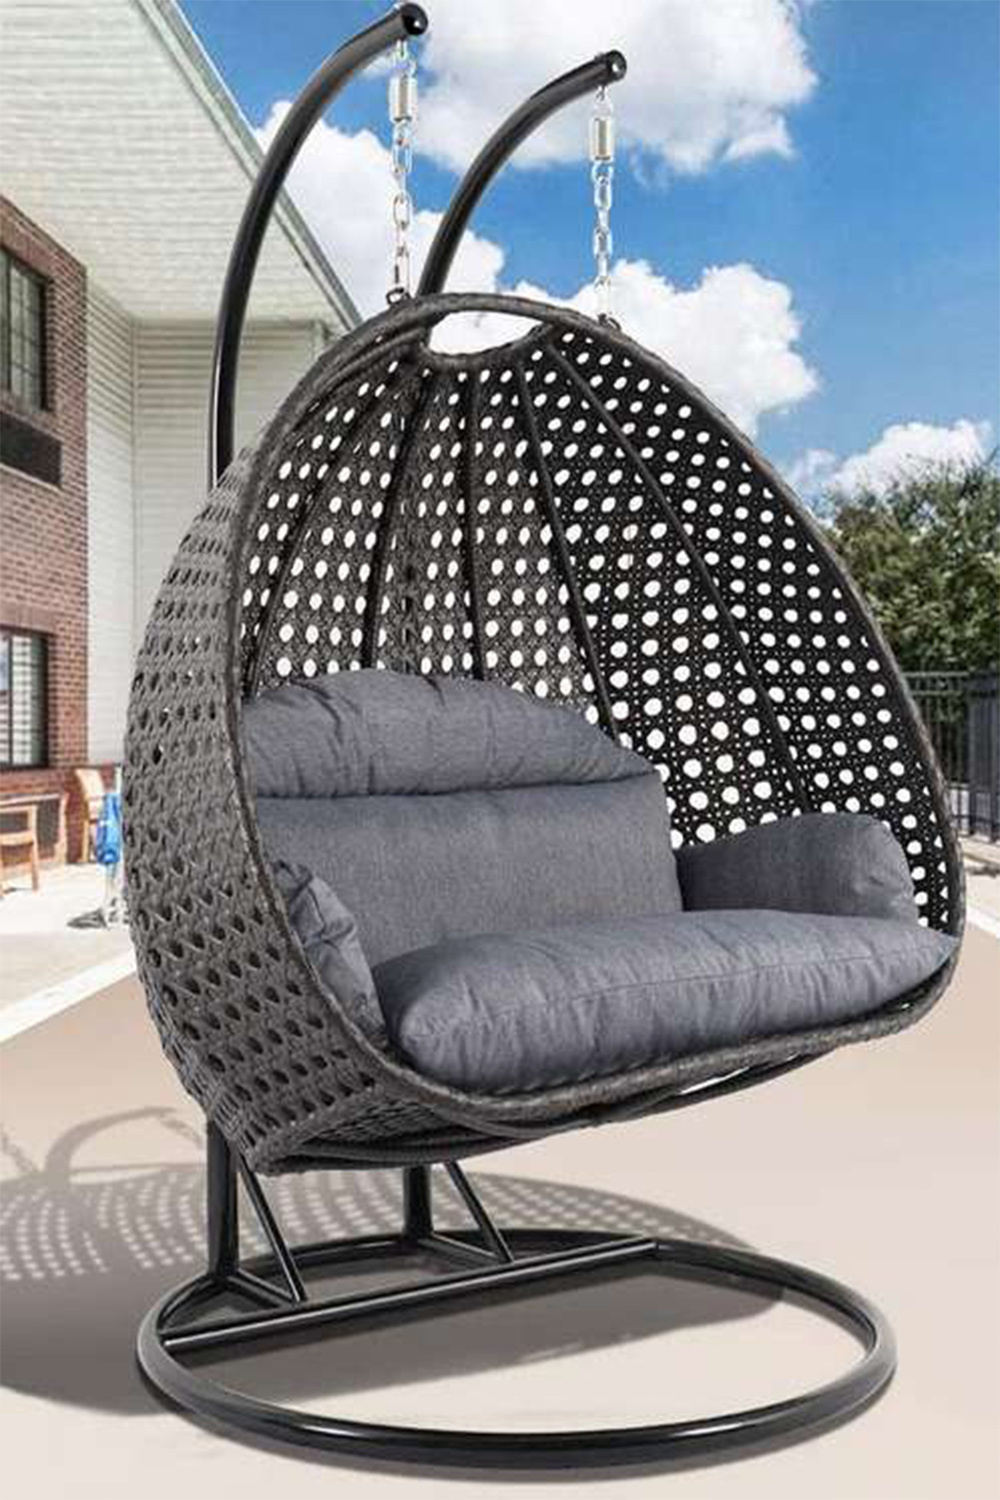 Mid Century Rattan Chair, China Swinging Canopy Hammock Outdoor Indoor Restaurant Double Seat Garden Patio Rattan Egg Swing Chair With Stand China Rattan Wicker Chairs Patio Swing Chair